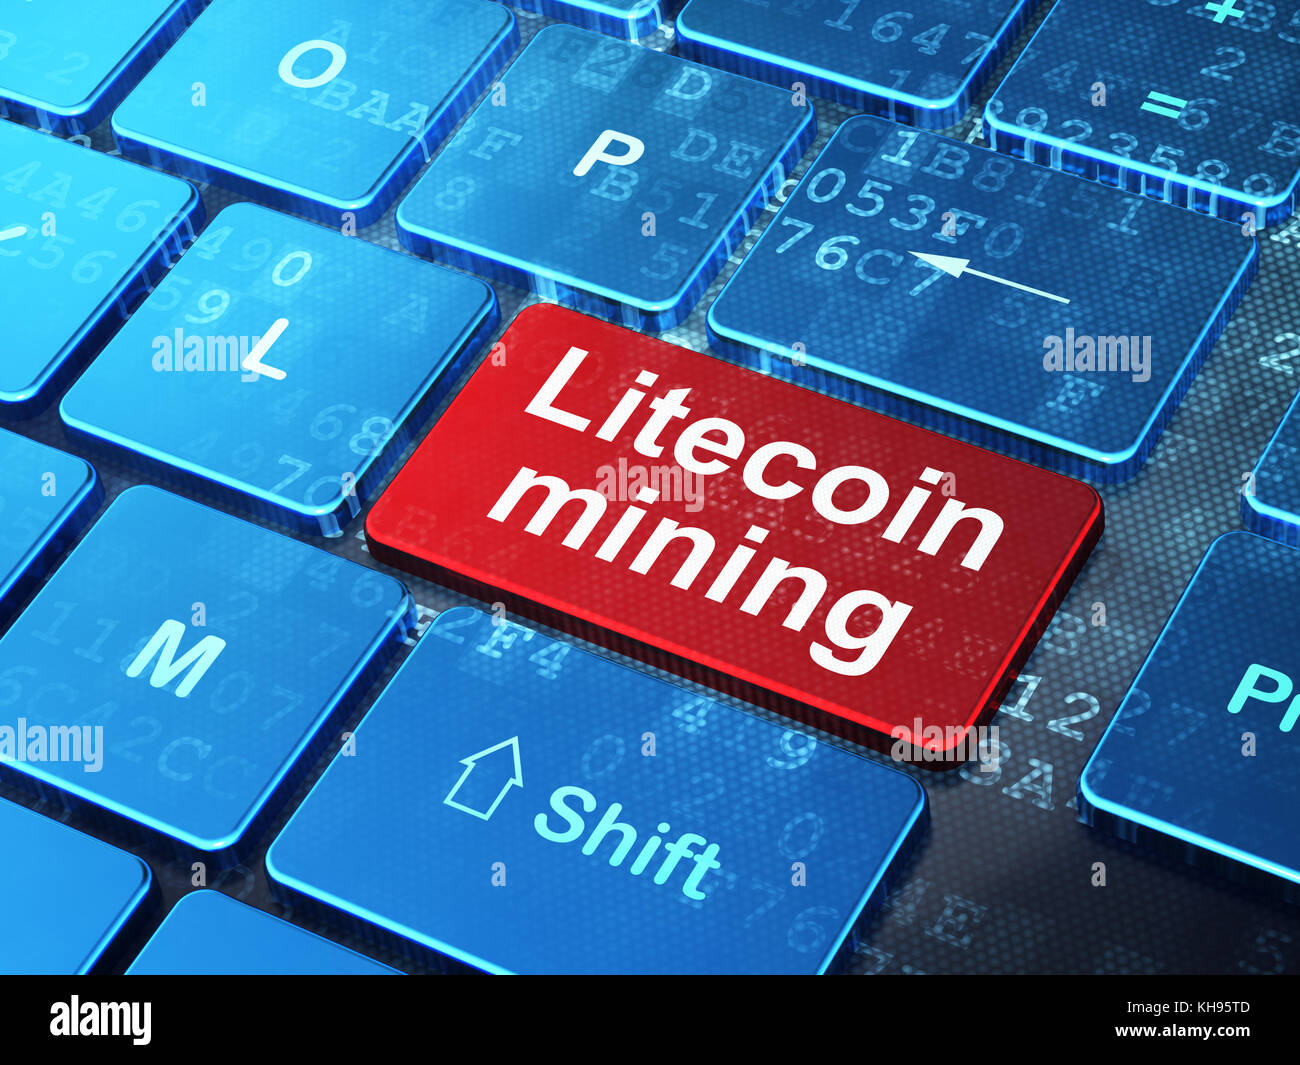 Pc Litecoin Miner Where Can I Buy Cryptocurrency Stock